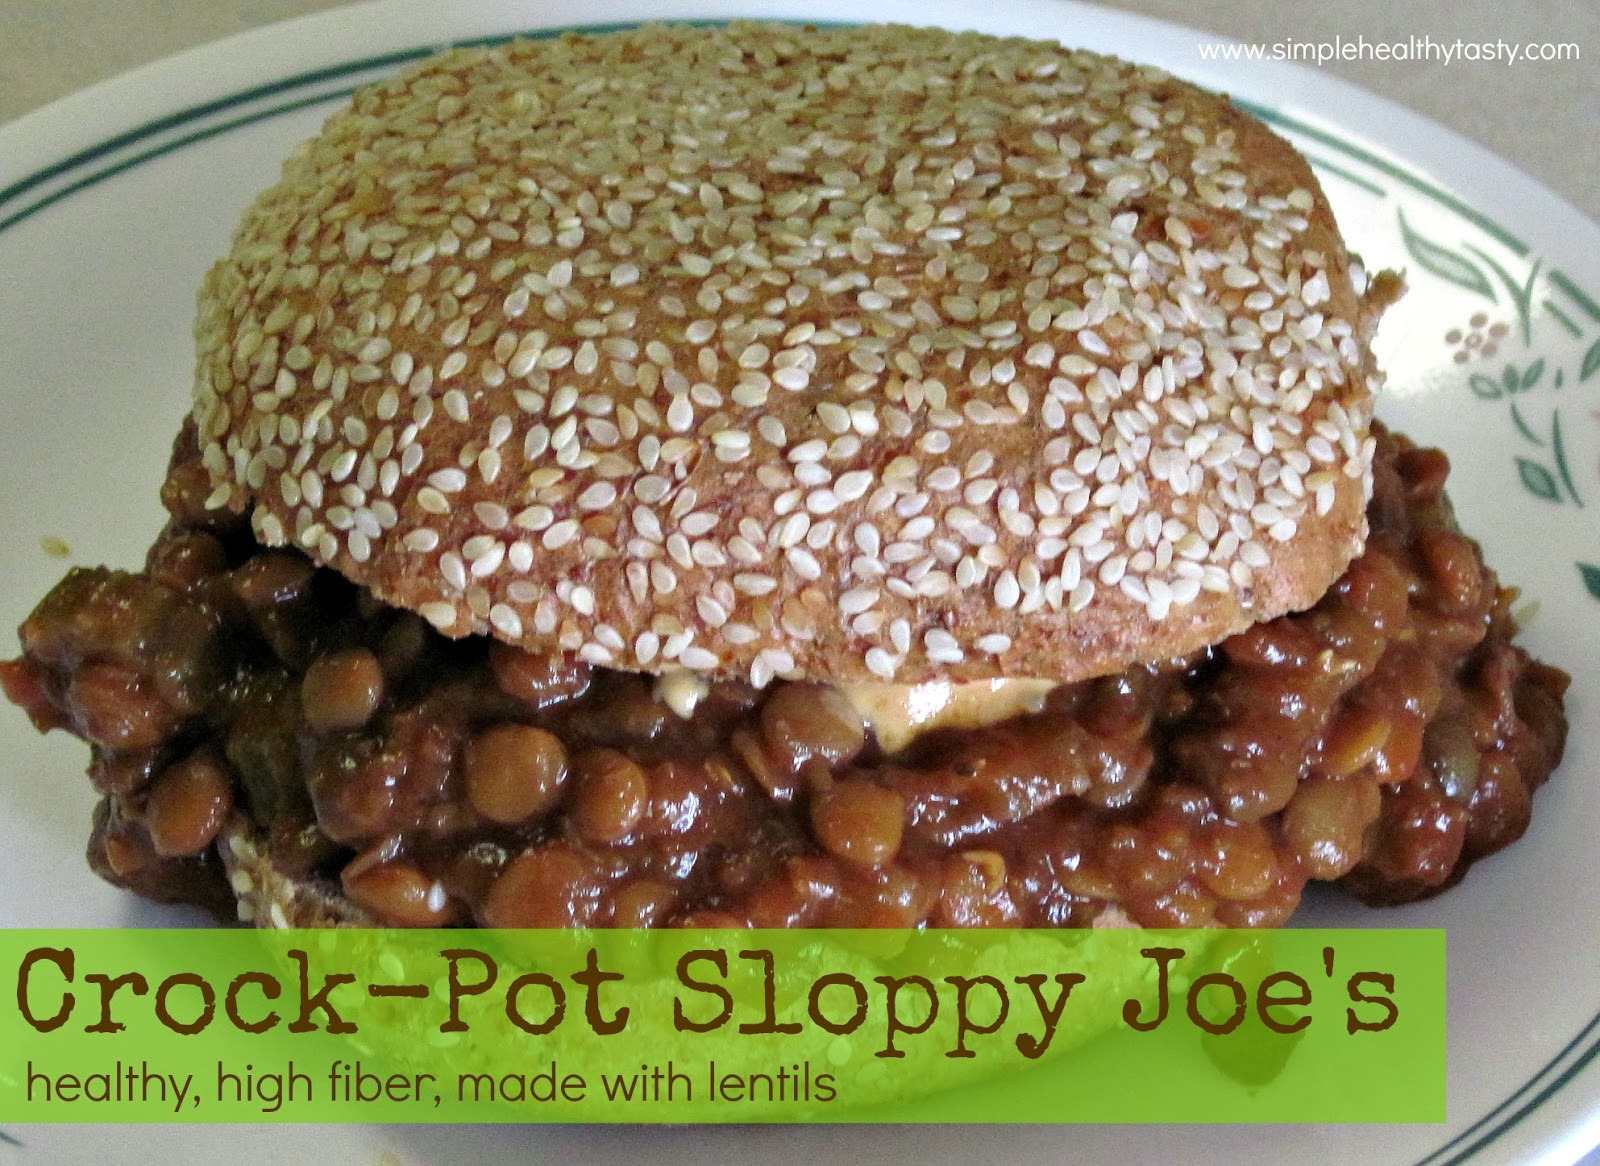 Crock-Pot Sloppy Joes